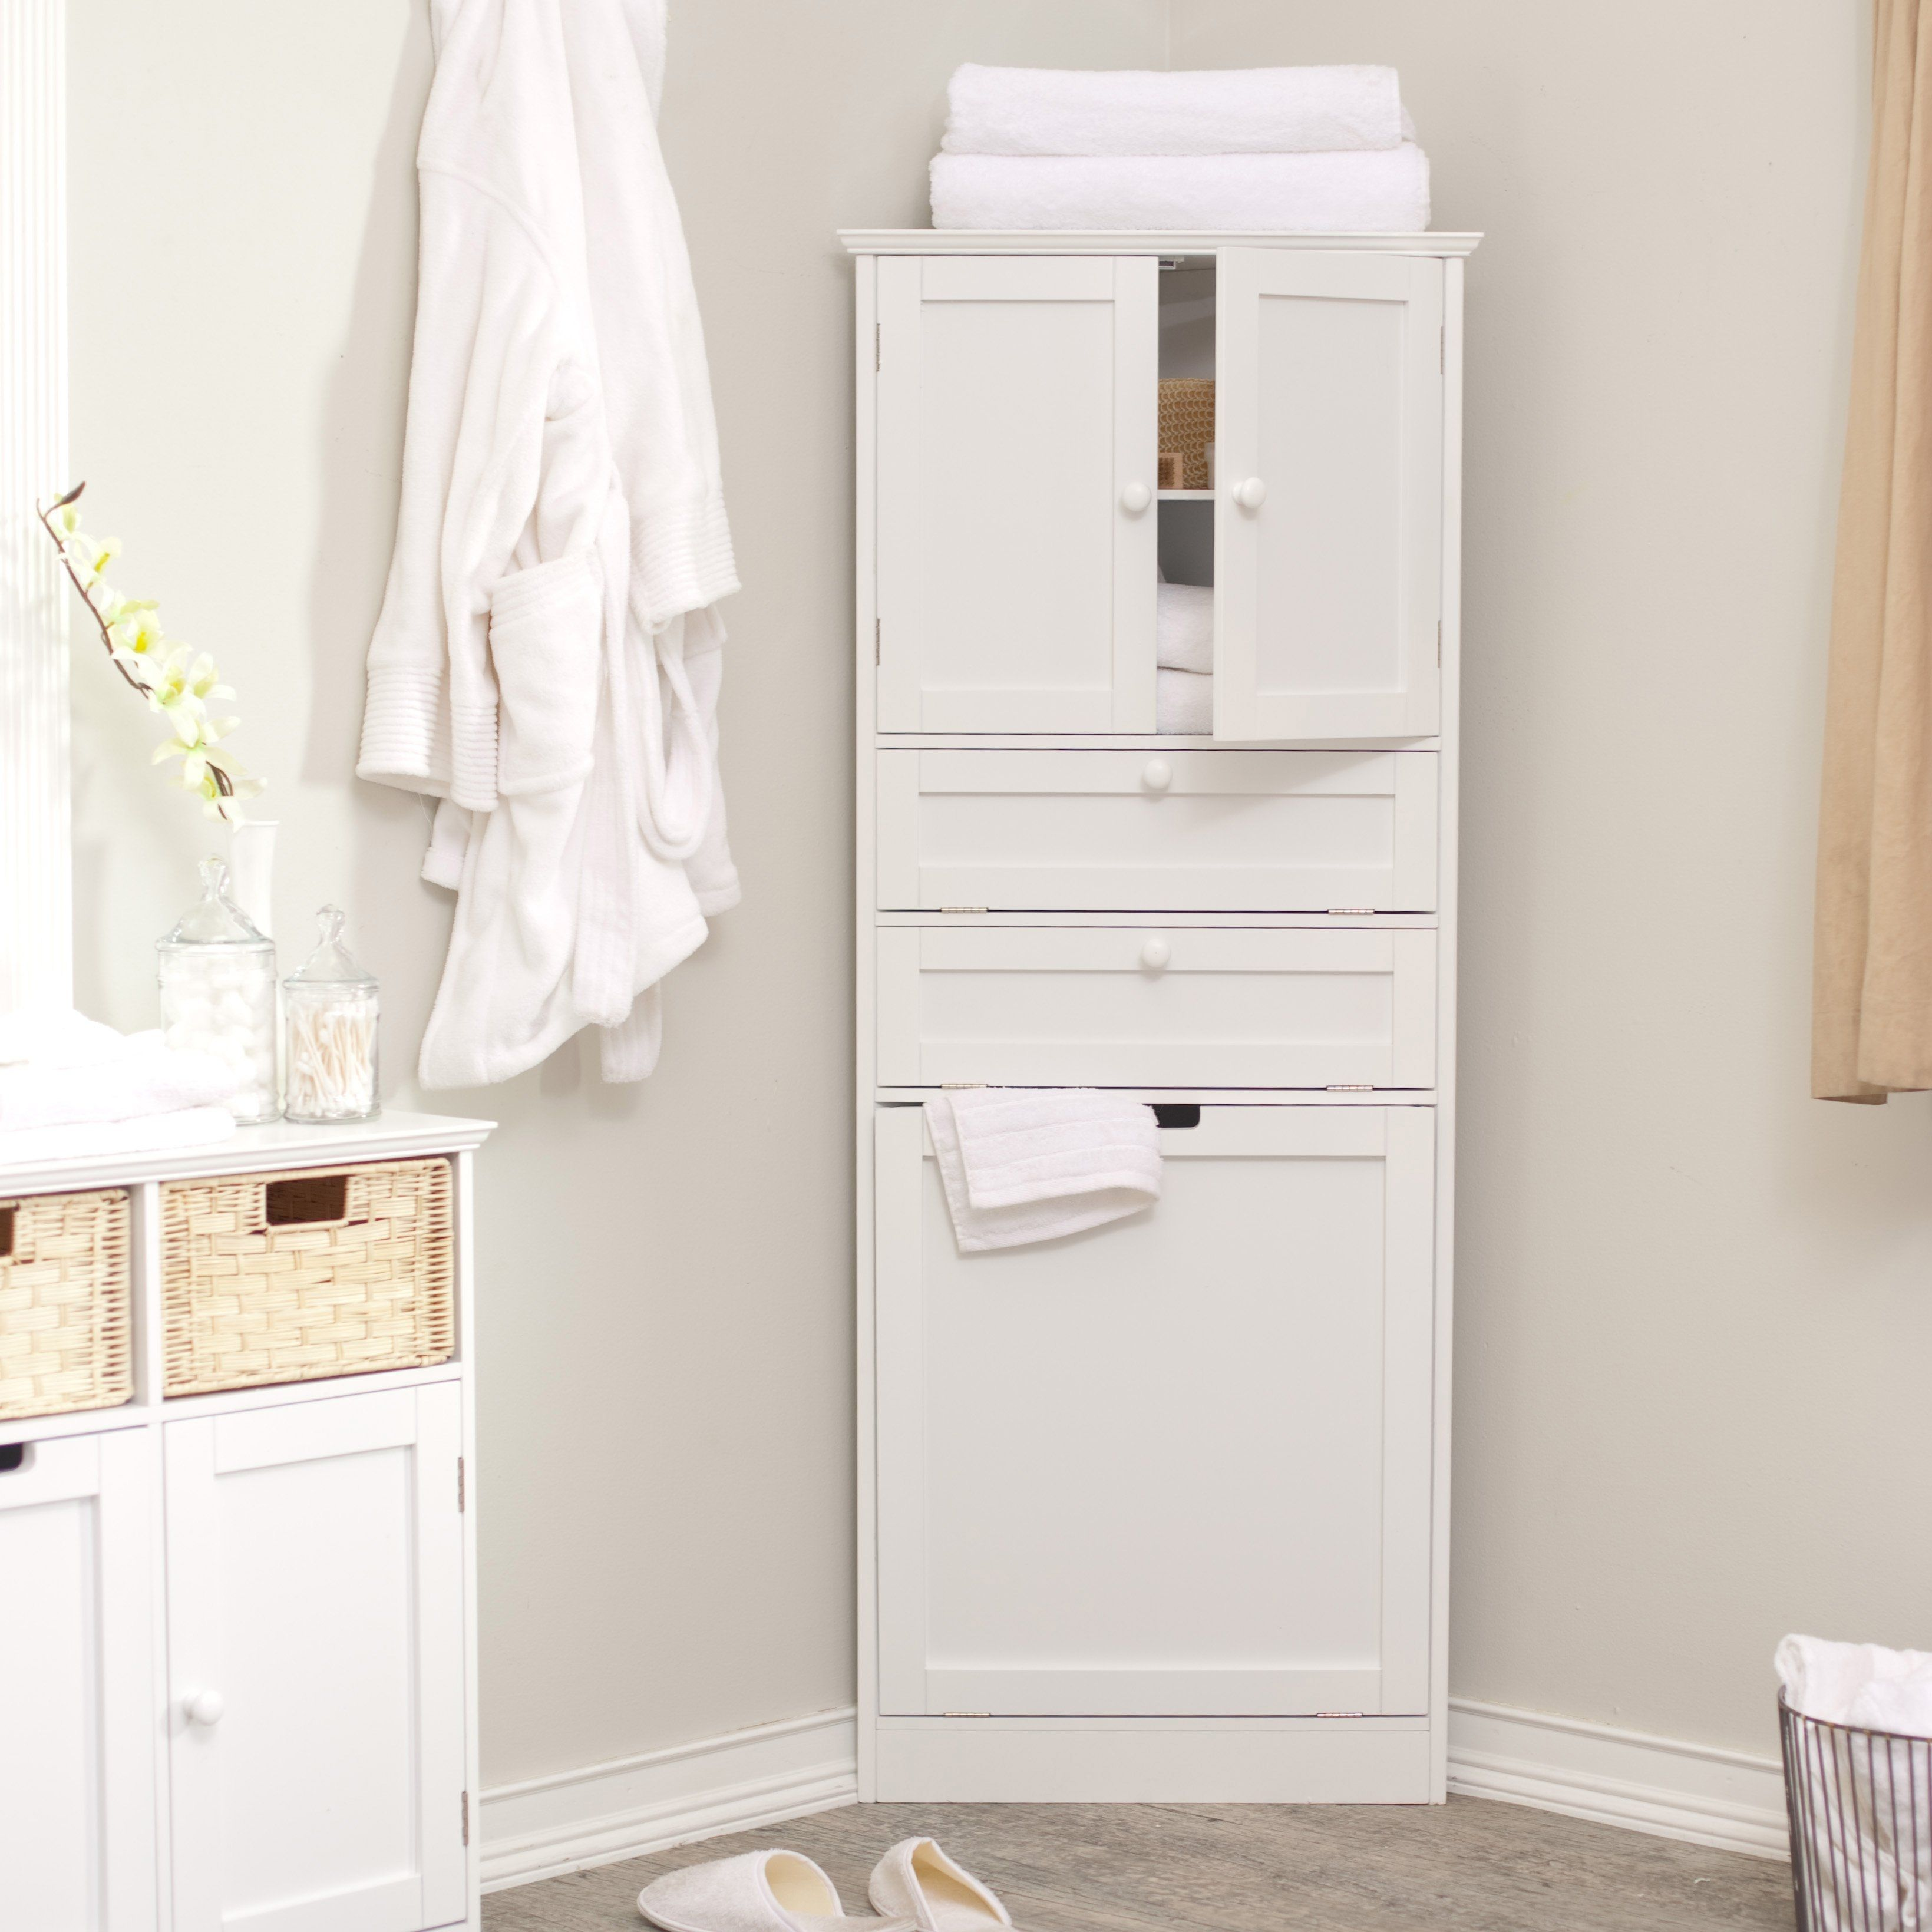 Bathroom Cabinet With Hamper Corner Storage Cabinet Bathroom Corner Cabinet Corner Linen Cabinet